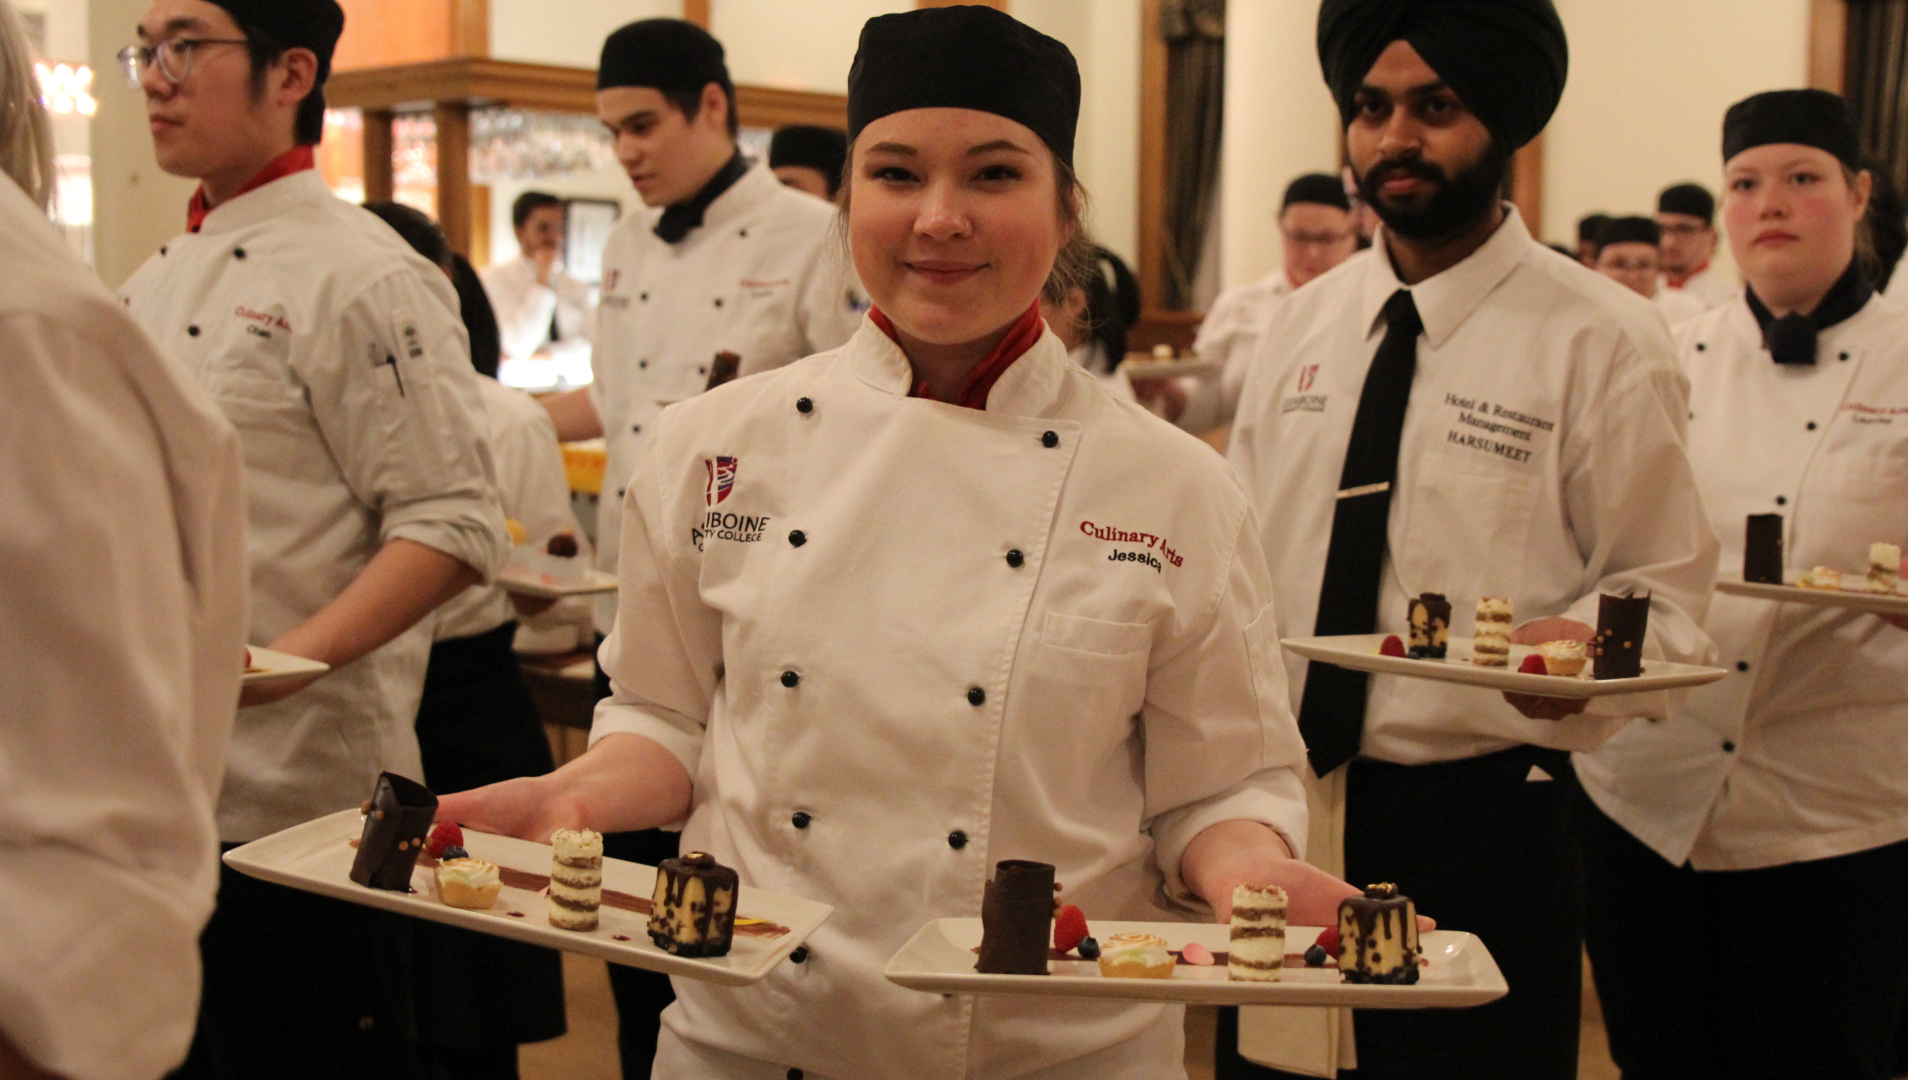 A culinary student prepares to serve dessert at the 2019 Foundation Gala Dinner